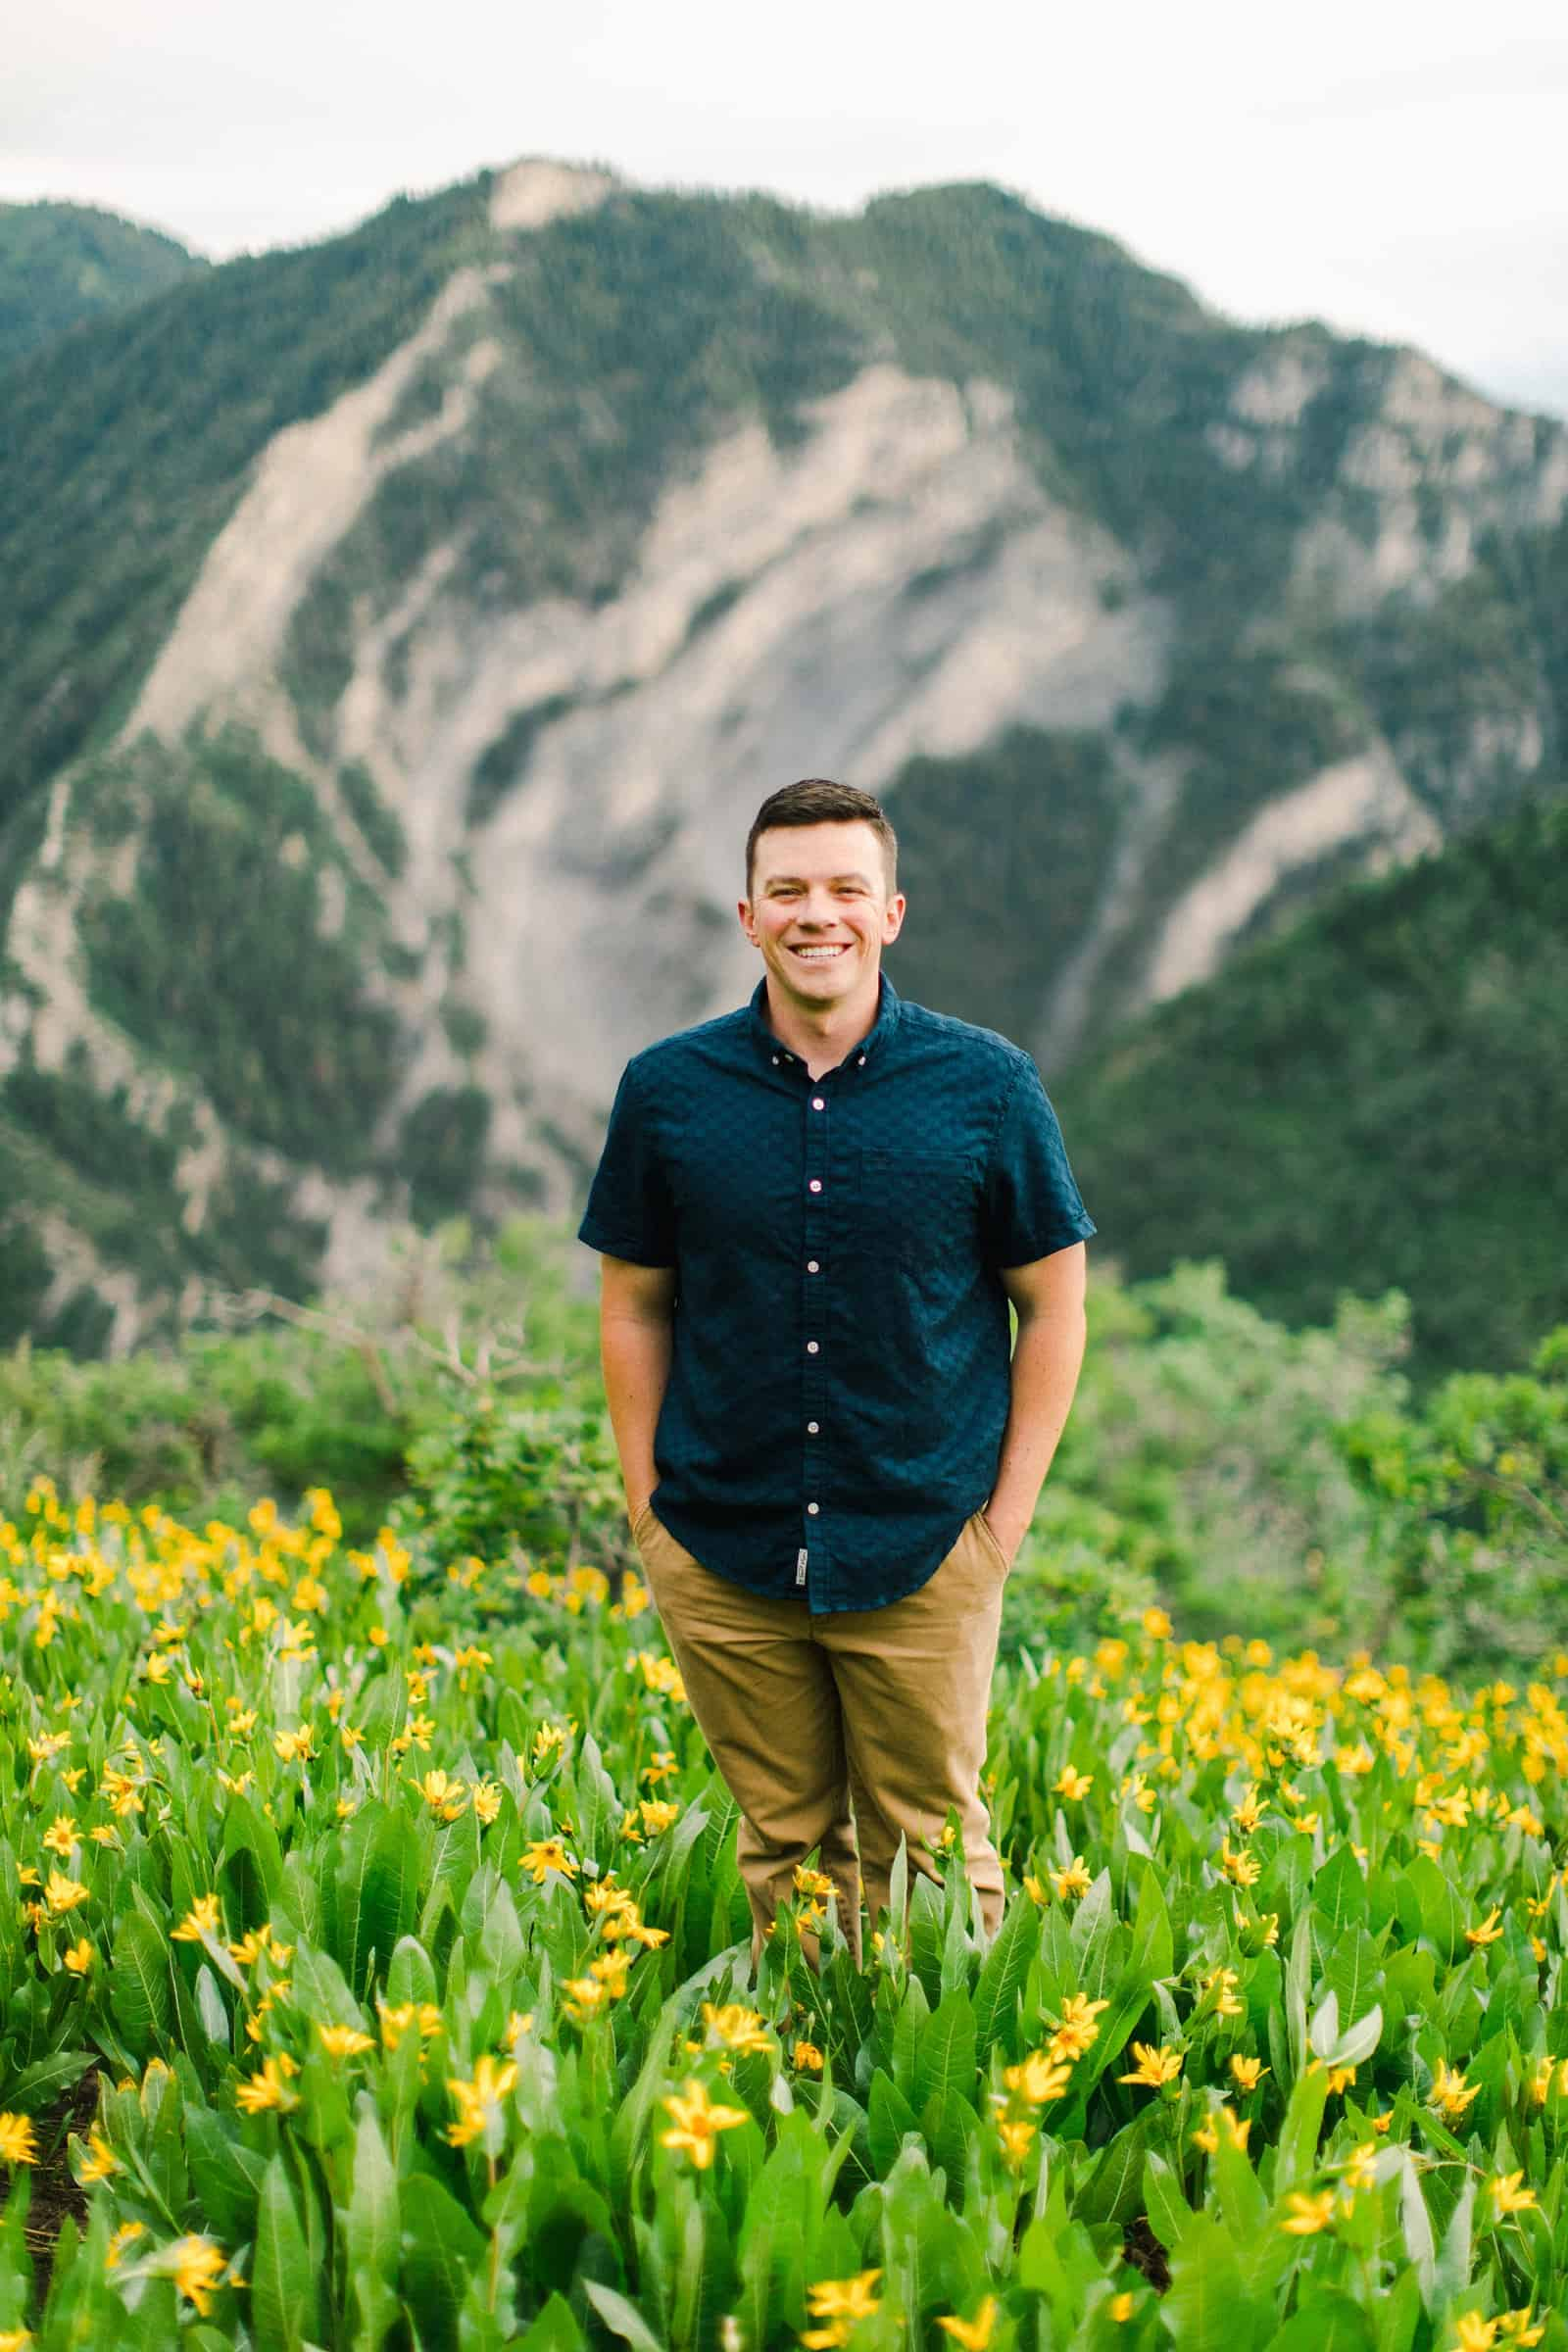 Provo Canyon wildflowers field engagement session, Utah wedding photography, groom in dark blue button up shirt and khaki pants